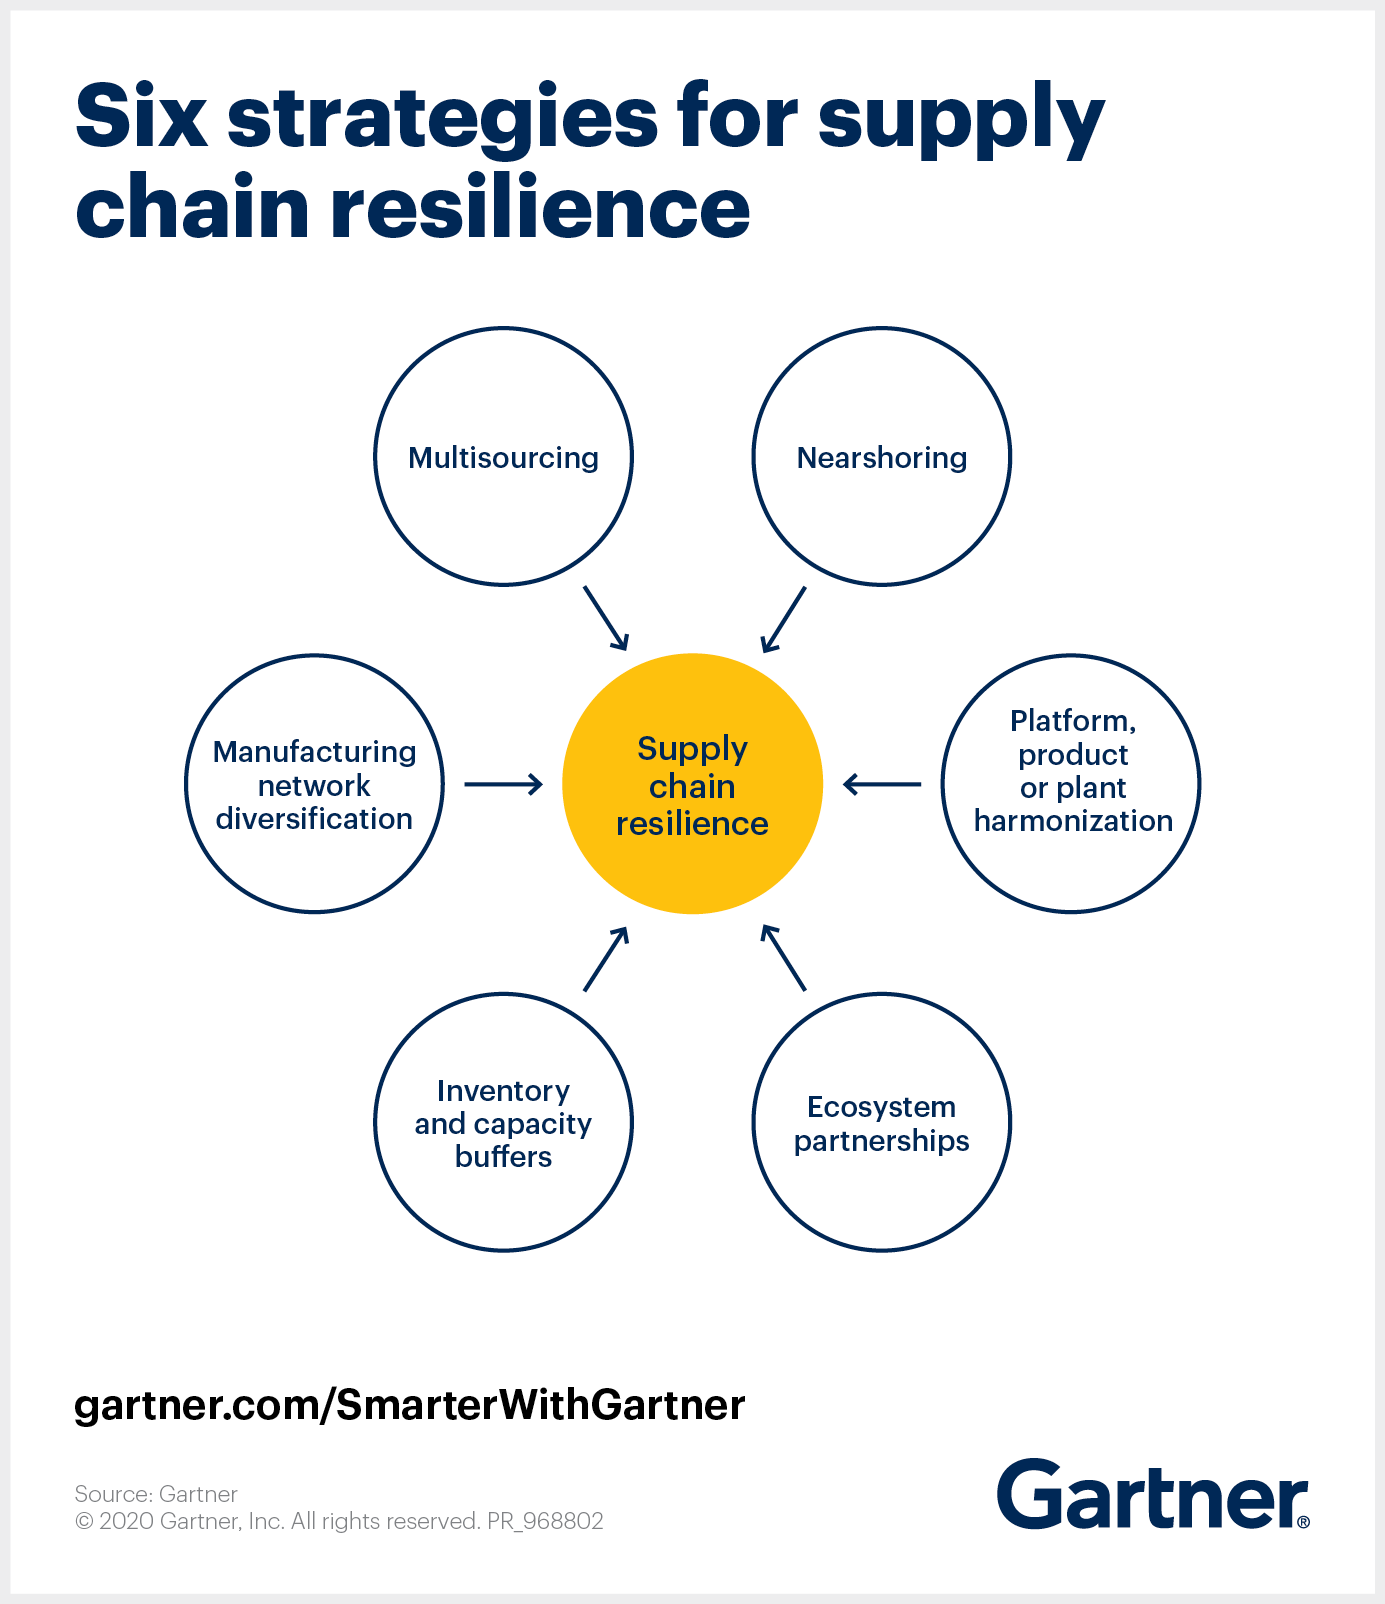 Gartner outlines six strategies for supply chain resilience: Multisourcing, nearshoring, harmonization, partnerships, buffers, diversification